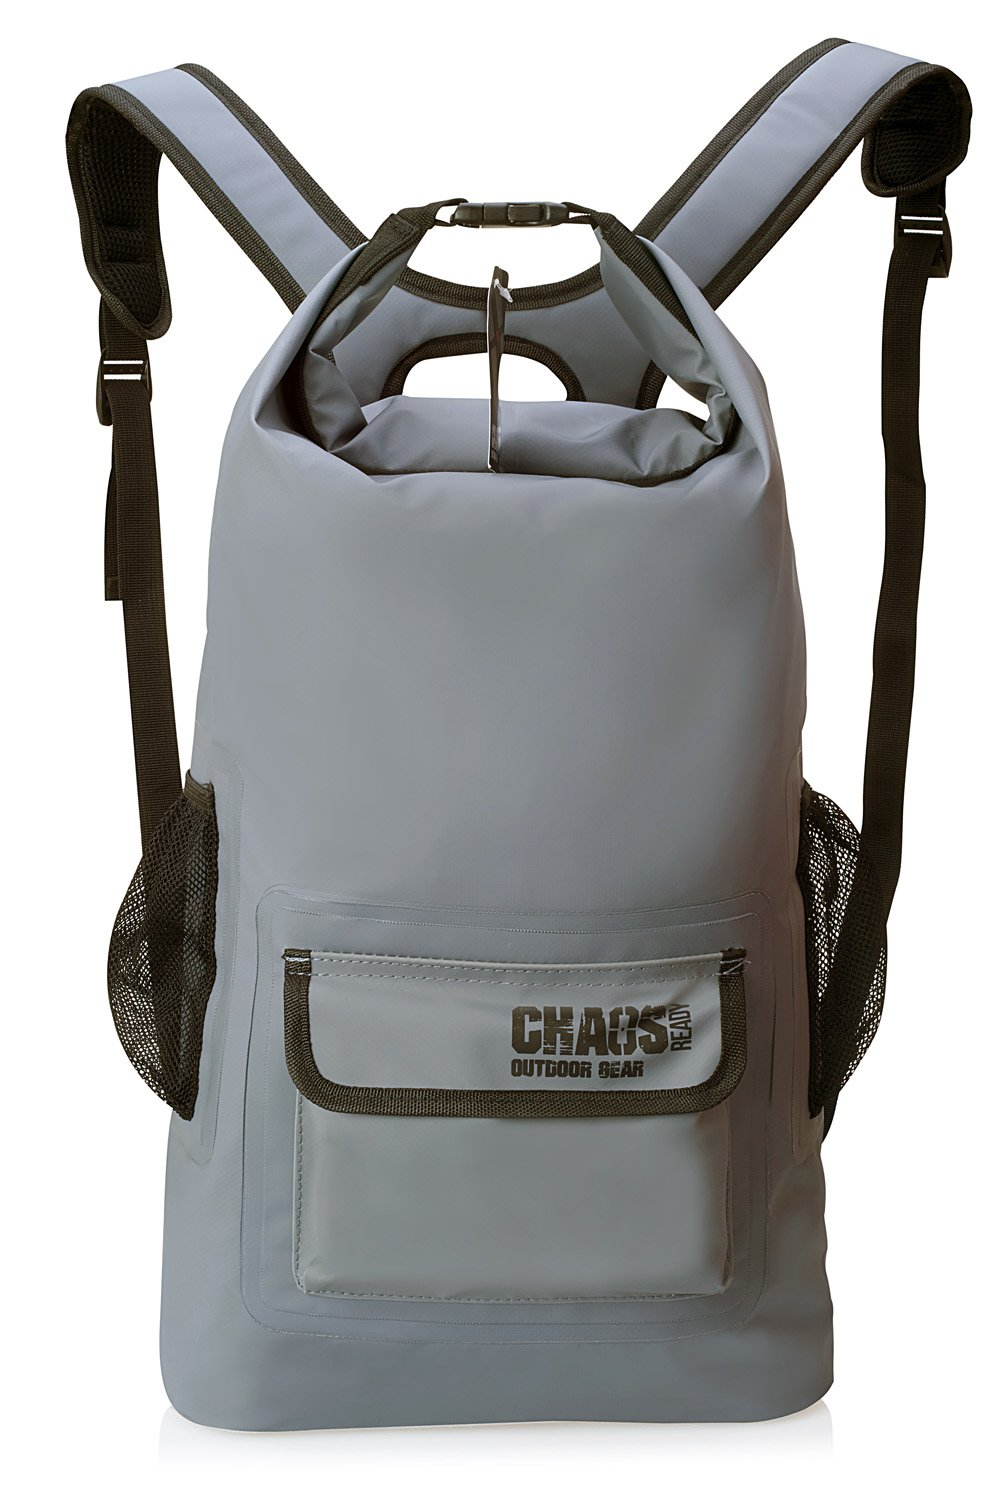 Chaos Ready Waterproof Backpack Review